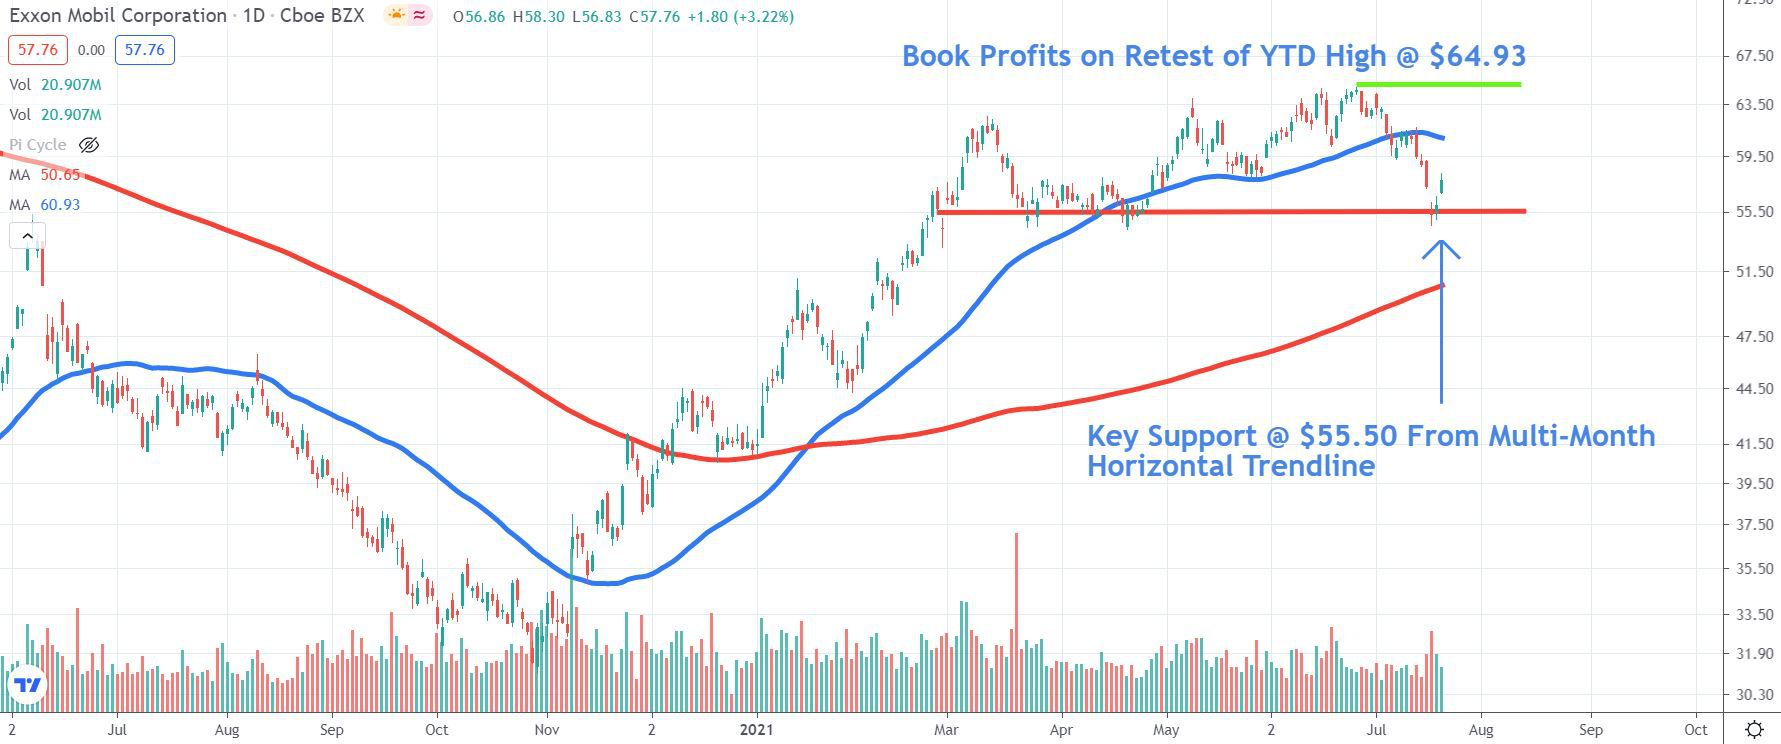 Chart depicting the share price of Exxon Mobil Corporation (XOM)